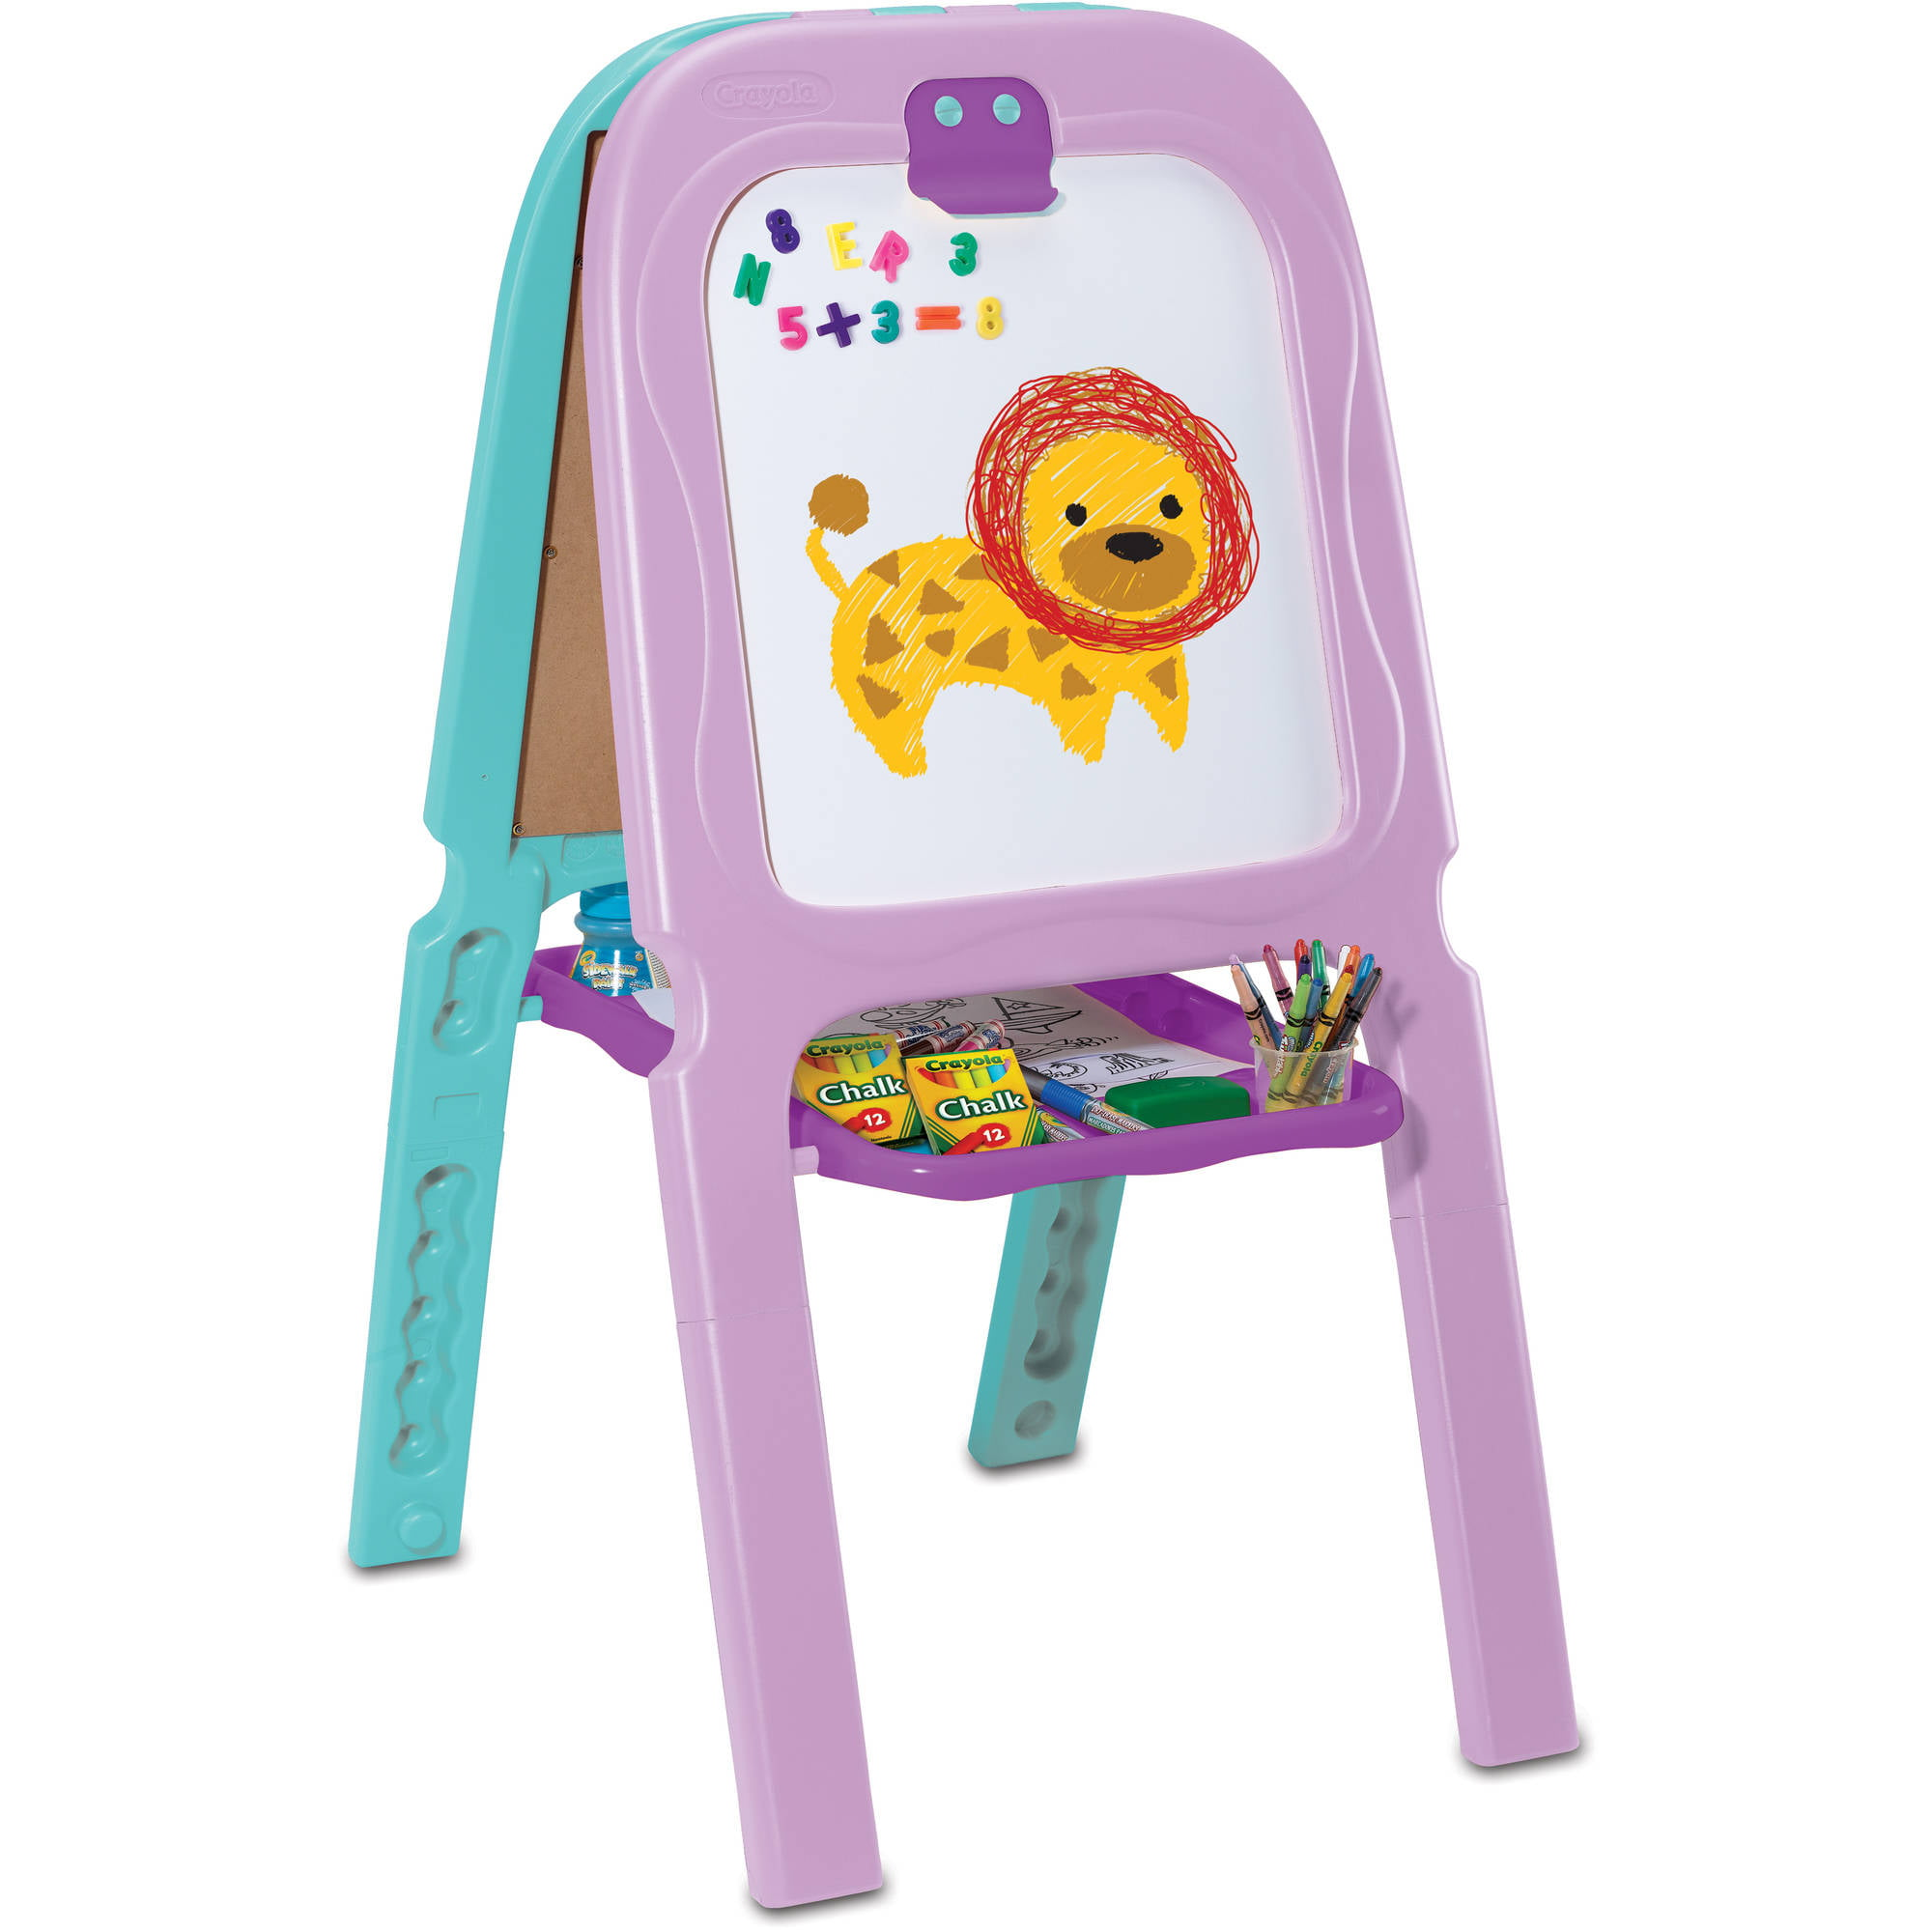 Crayola 3-in-1 Double Easel, Magnetic by Generic